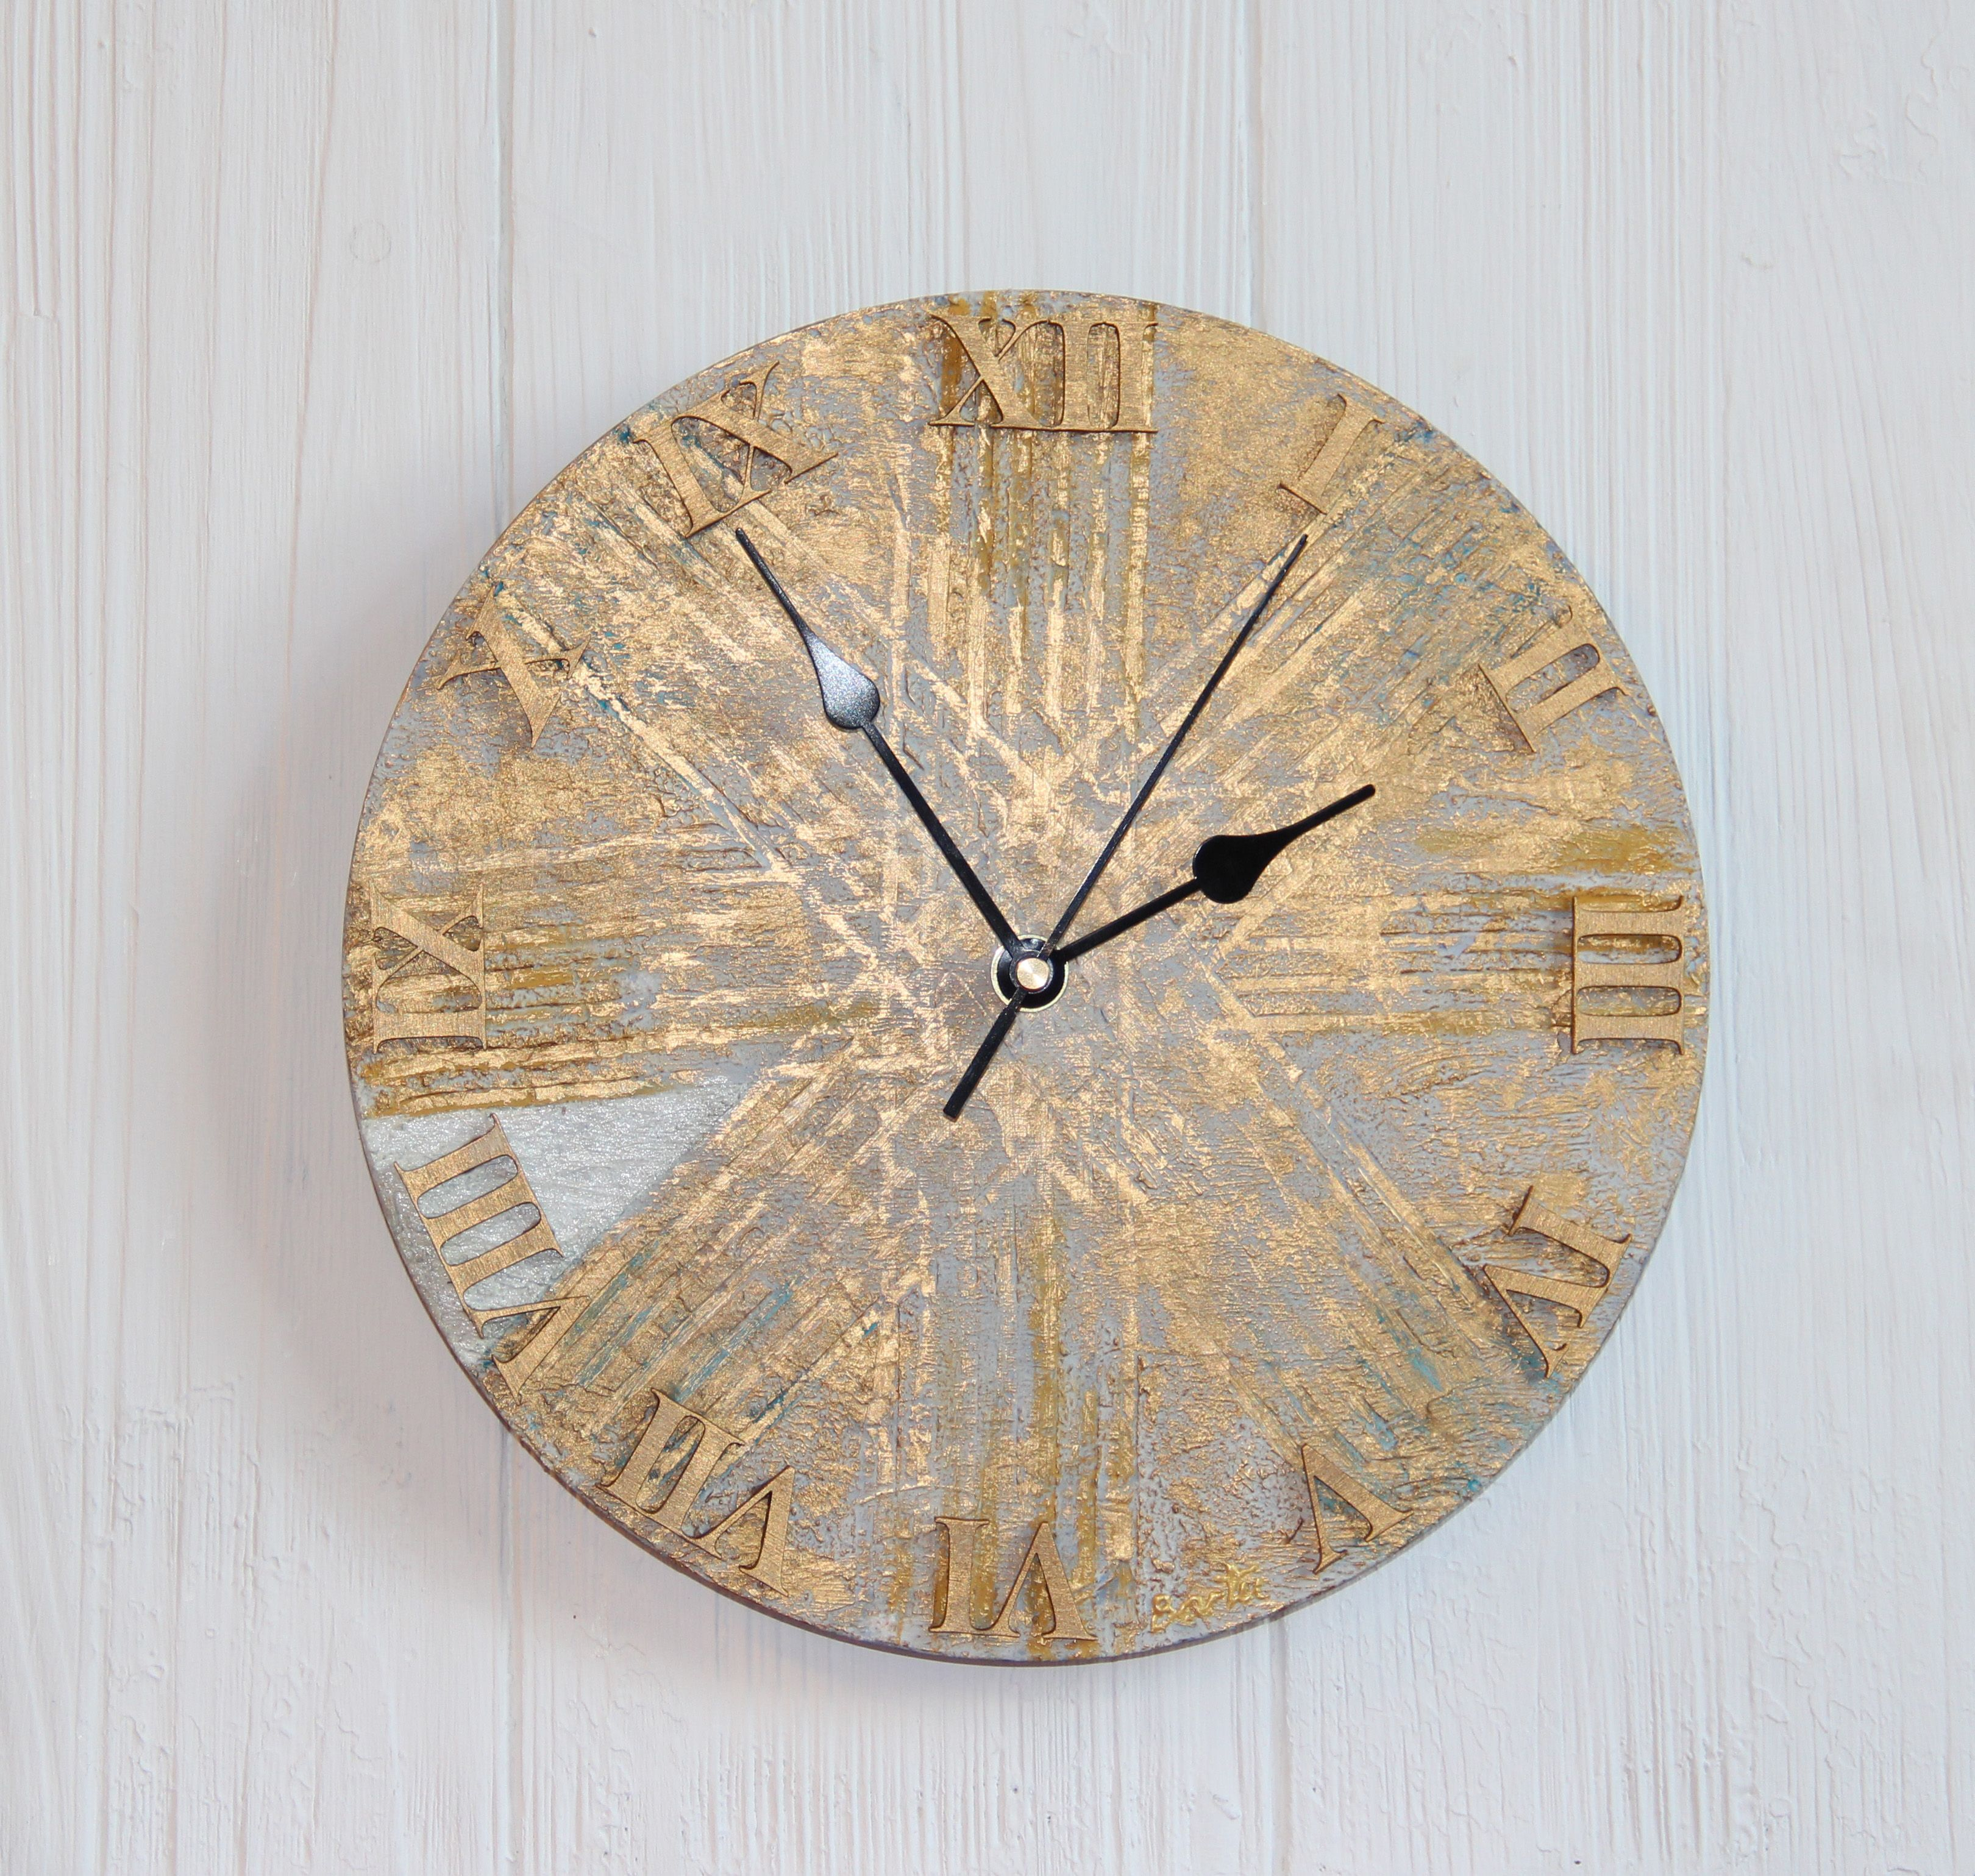 Ancient Time Handmade Wall Clock Gold Alone Controls Us